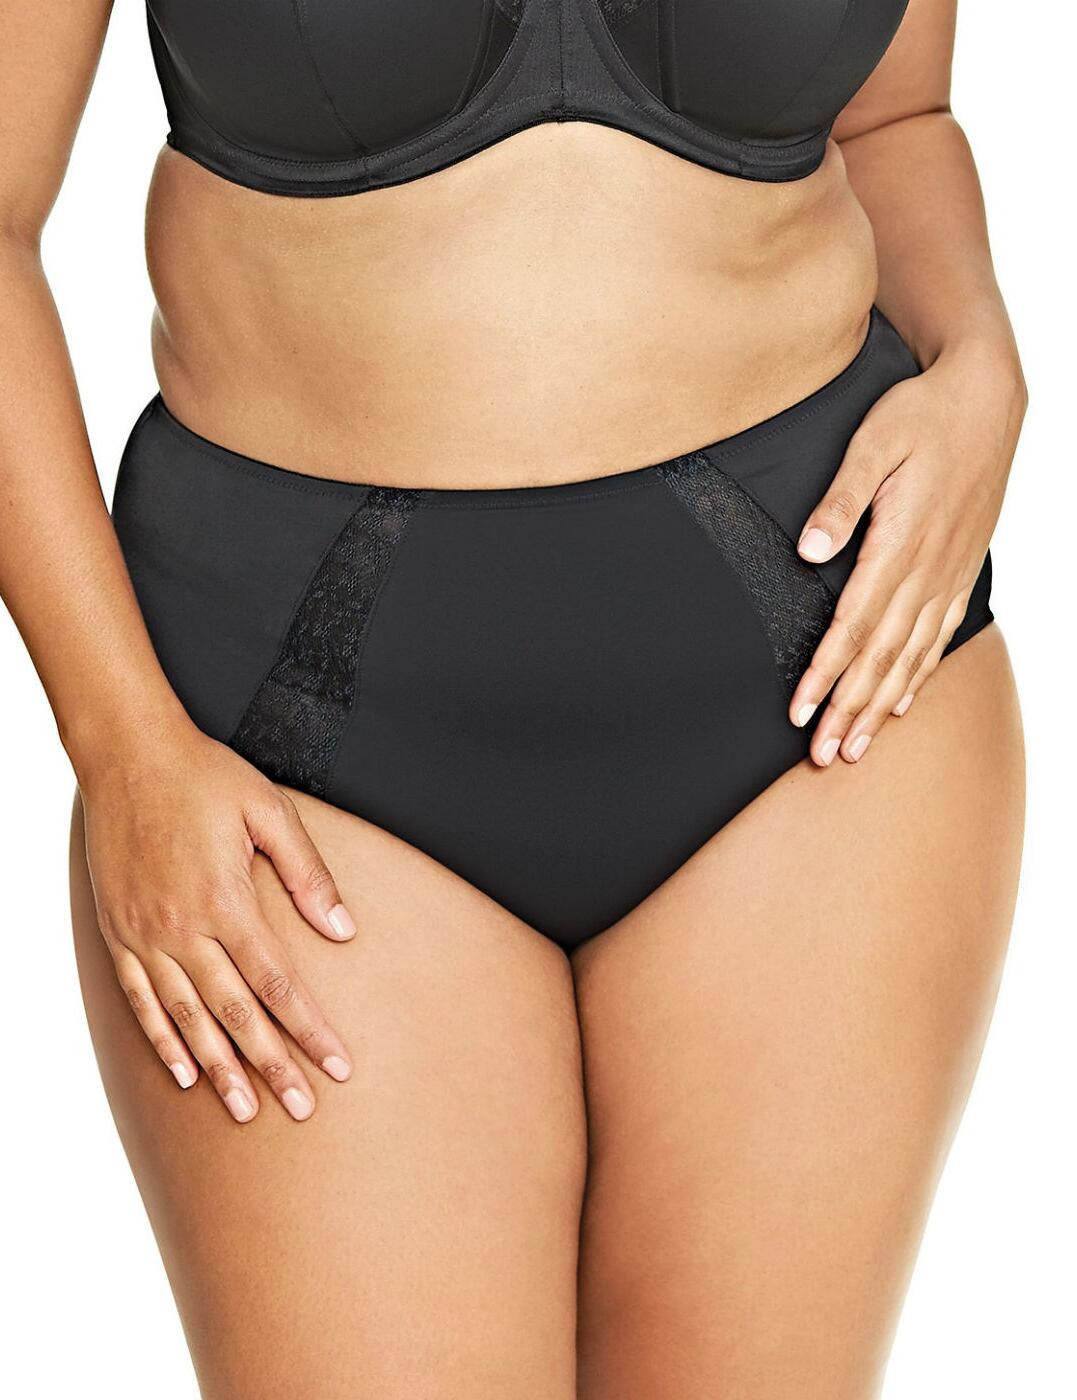 6665 Goddess Adelaide Brief - 6665 Black